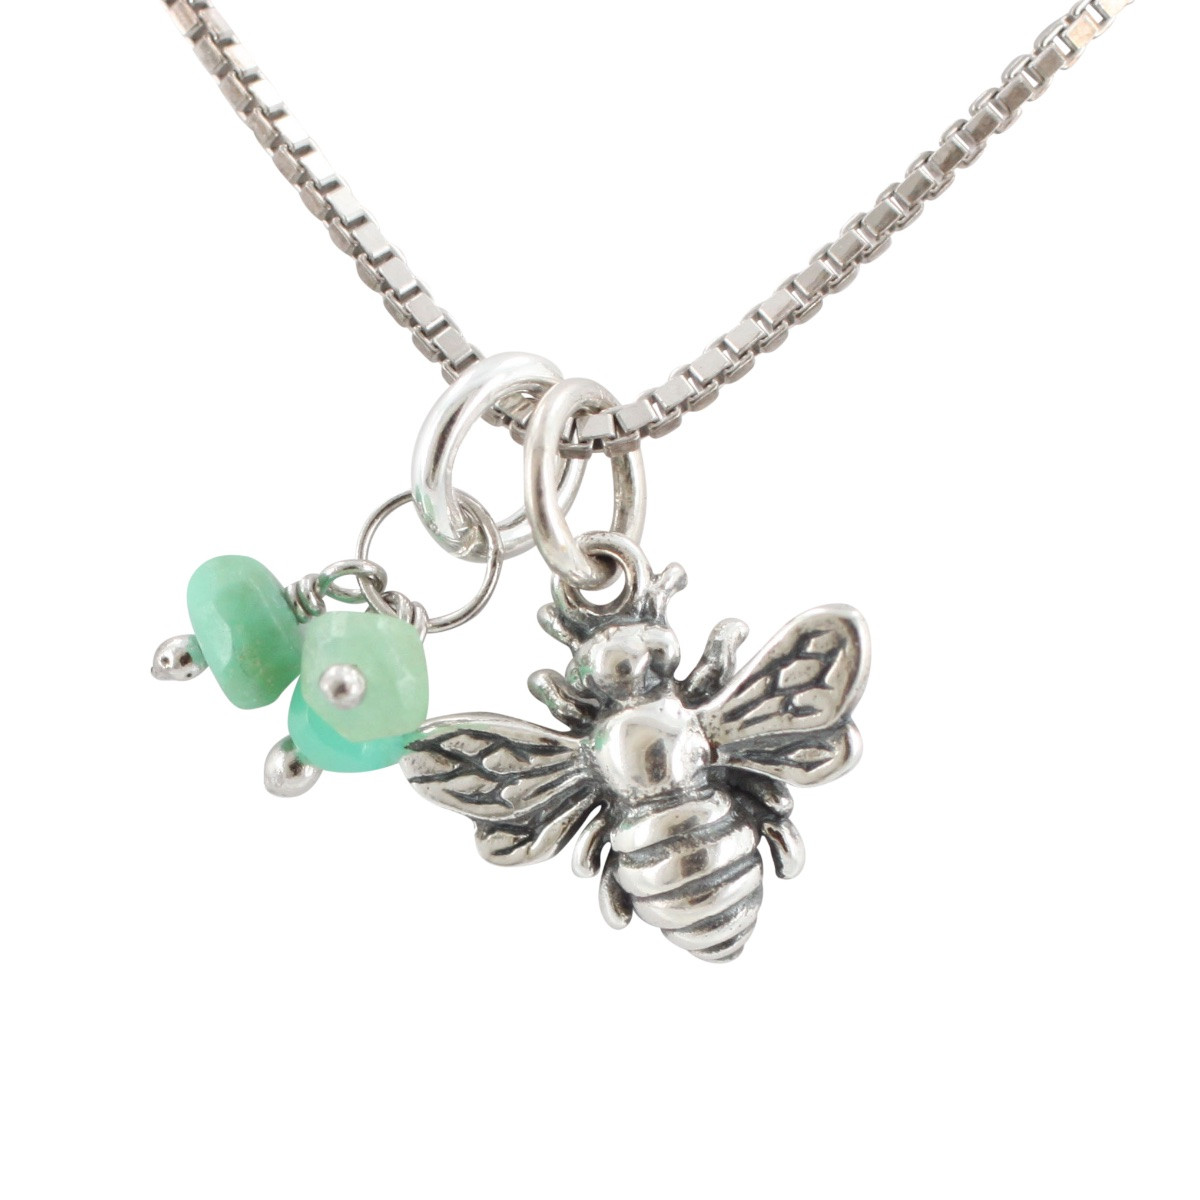 Tiny Honeybee Charm Necklace with Chrysoprase Gemstones, #6707S by